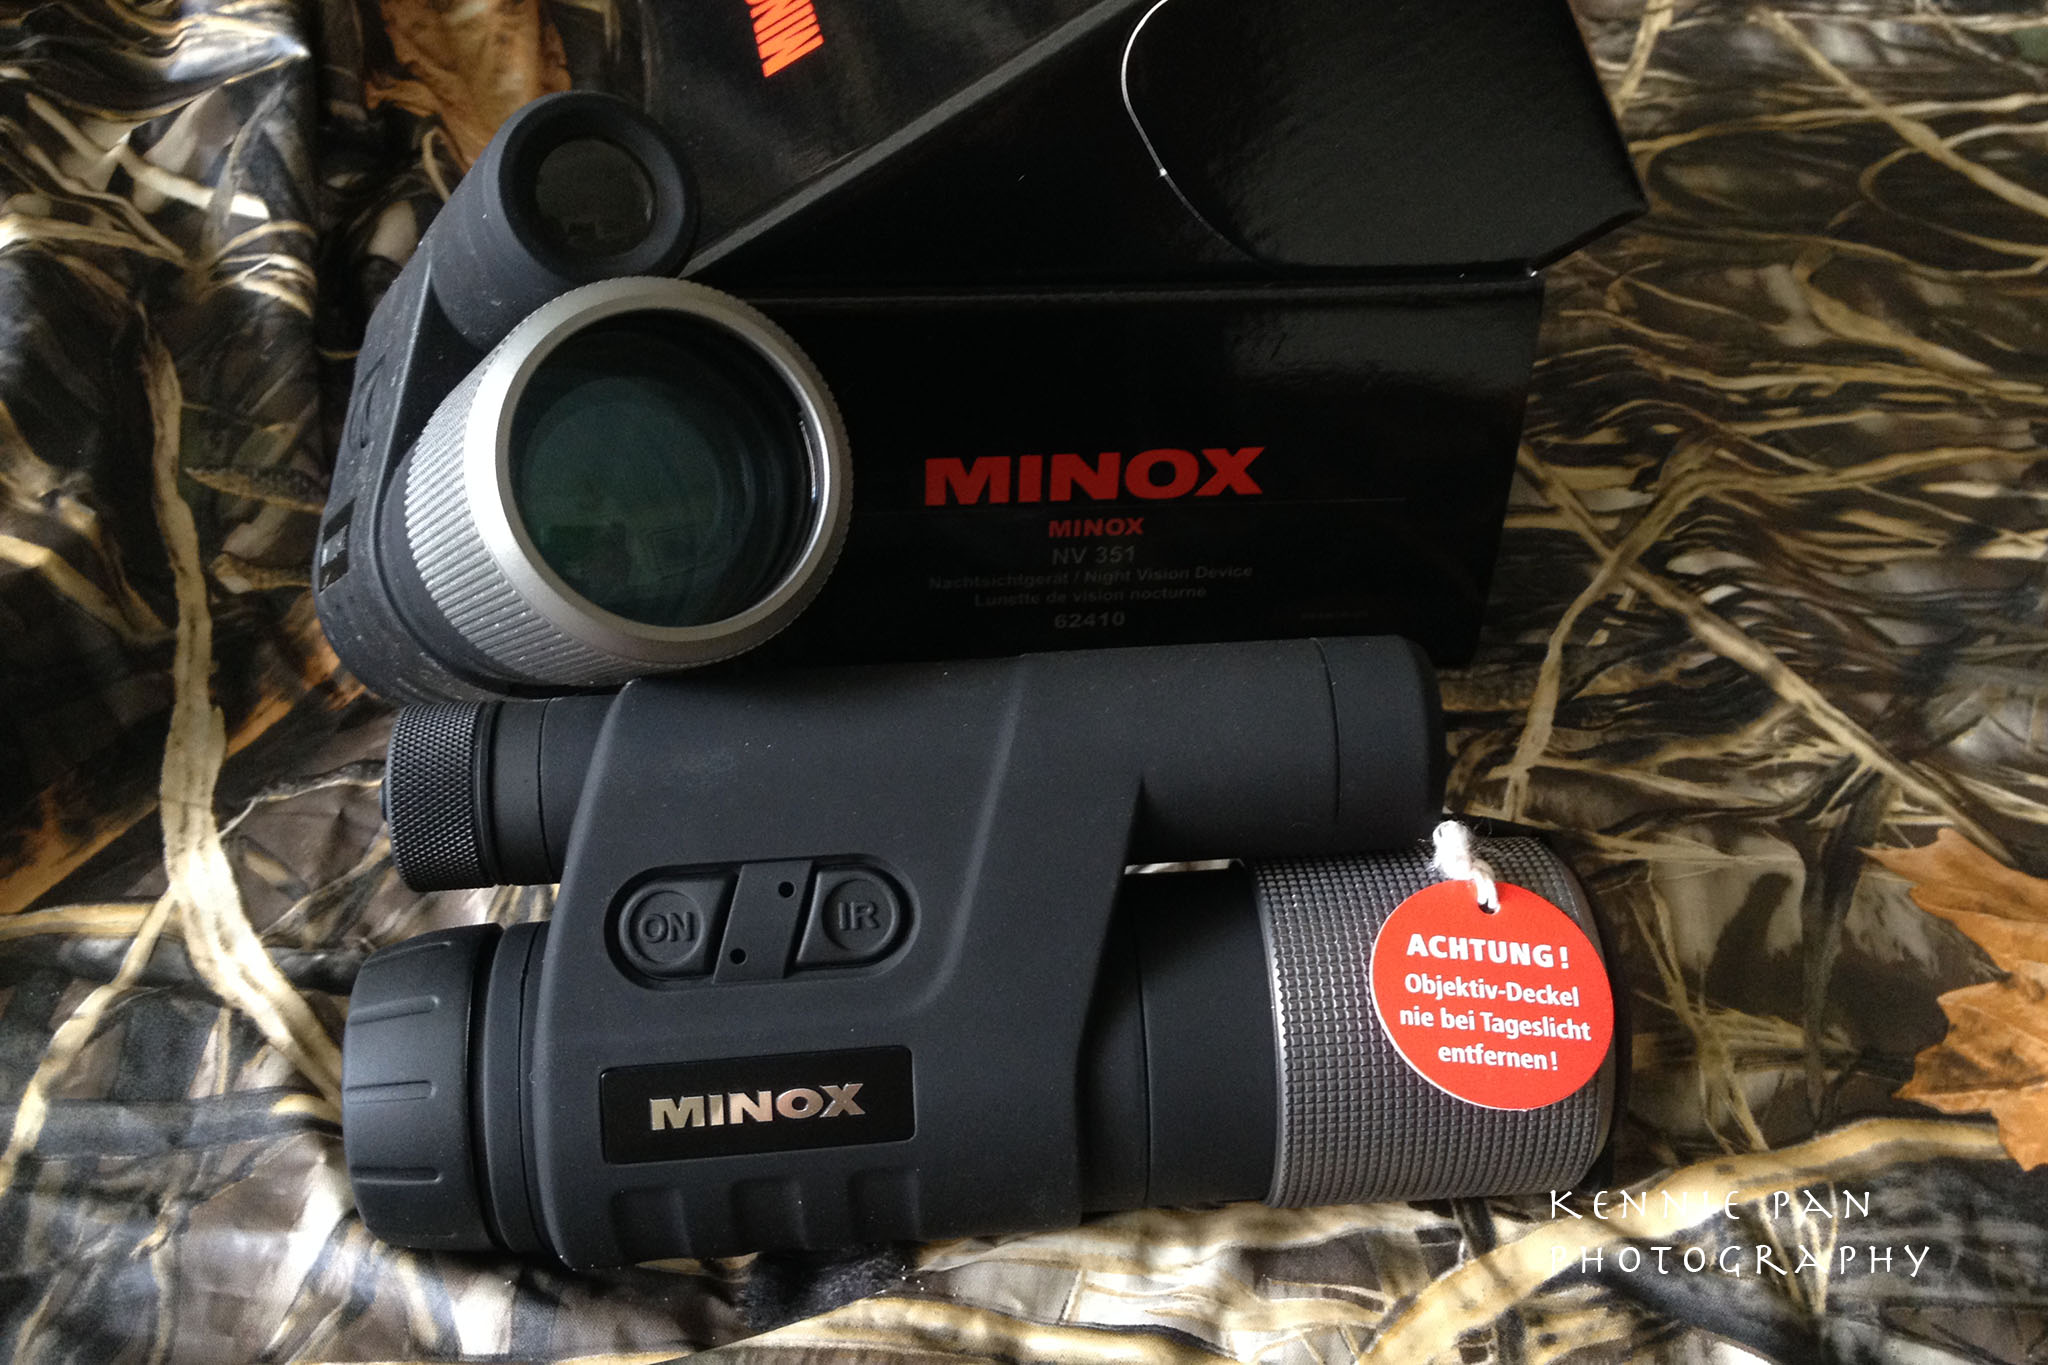 Minox Night Vision Device 351